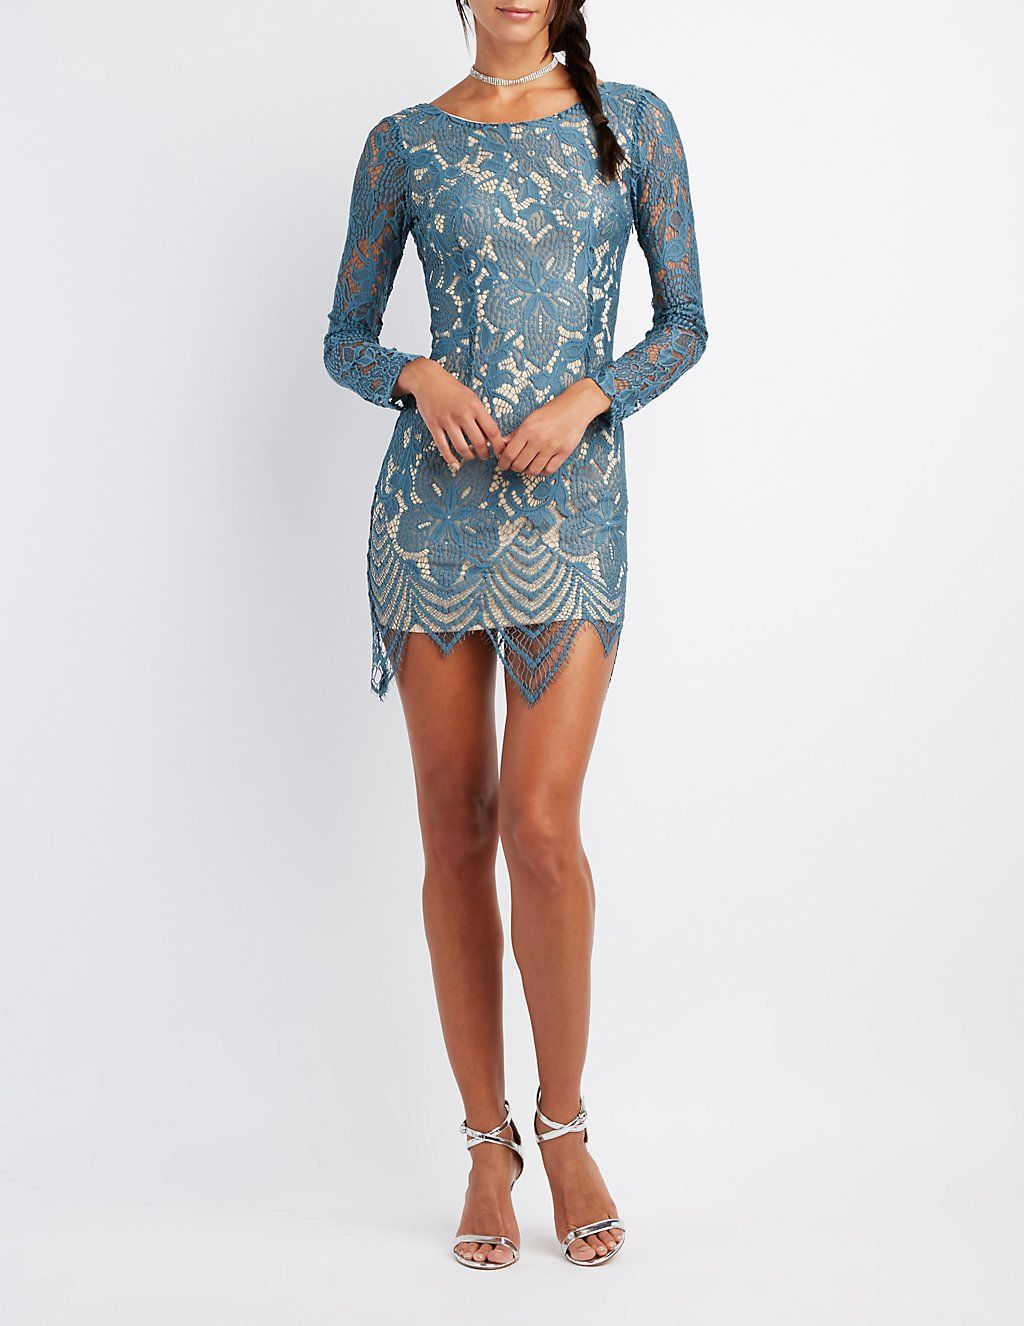 Eyelash Lace Bodycon Dress Charlotte Russe Dressy Outfits Long Sleeve Cocktail Dress Lace Bodycon Dress [ 1326 x 1024 Pixel ]